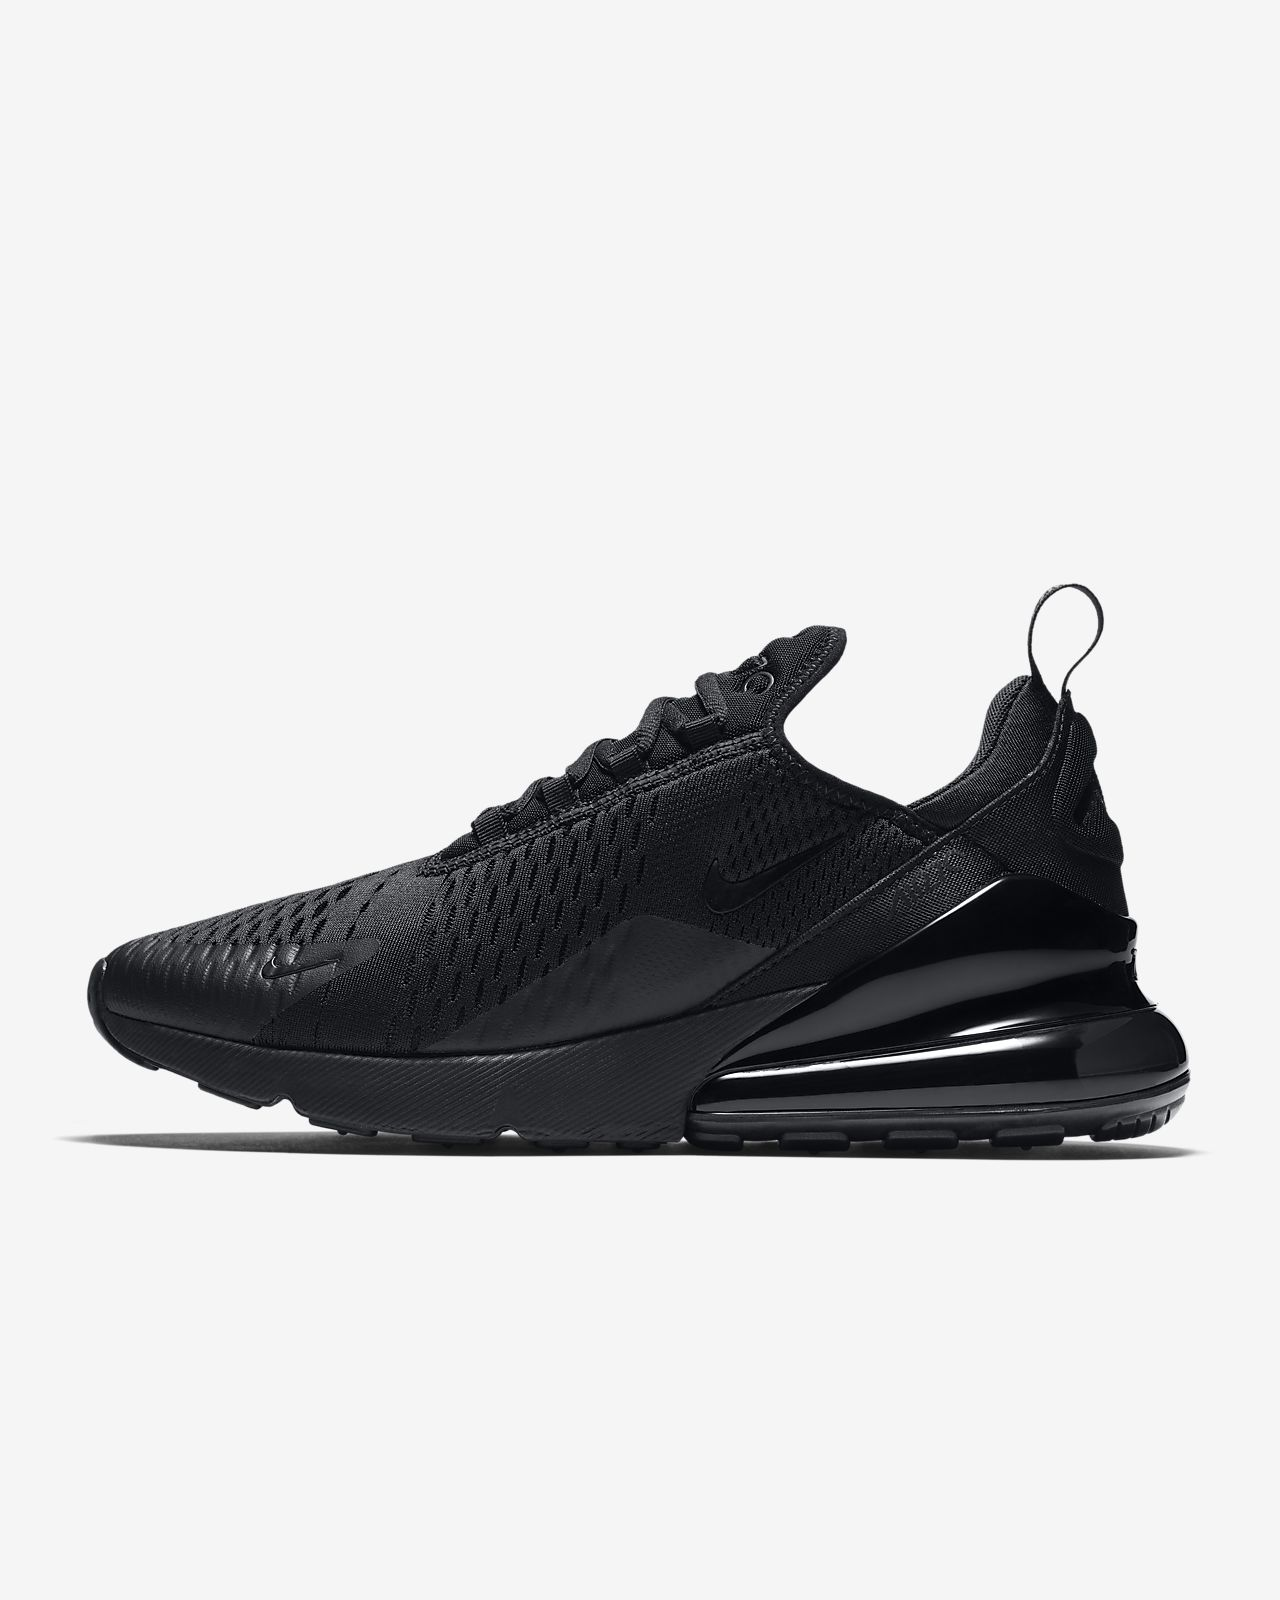 08e3ade598a4e9 Nike Air Max 270 Men s Shoe. Nike.com ZA